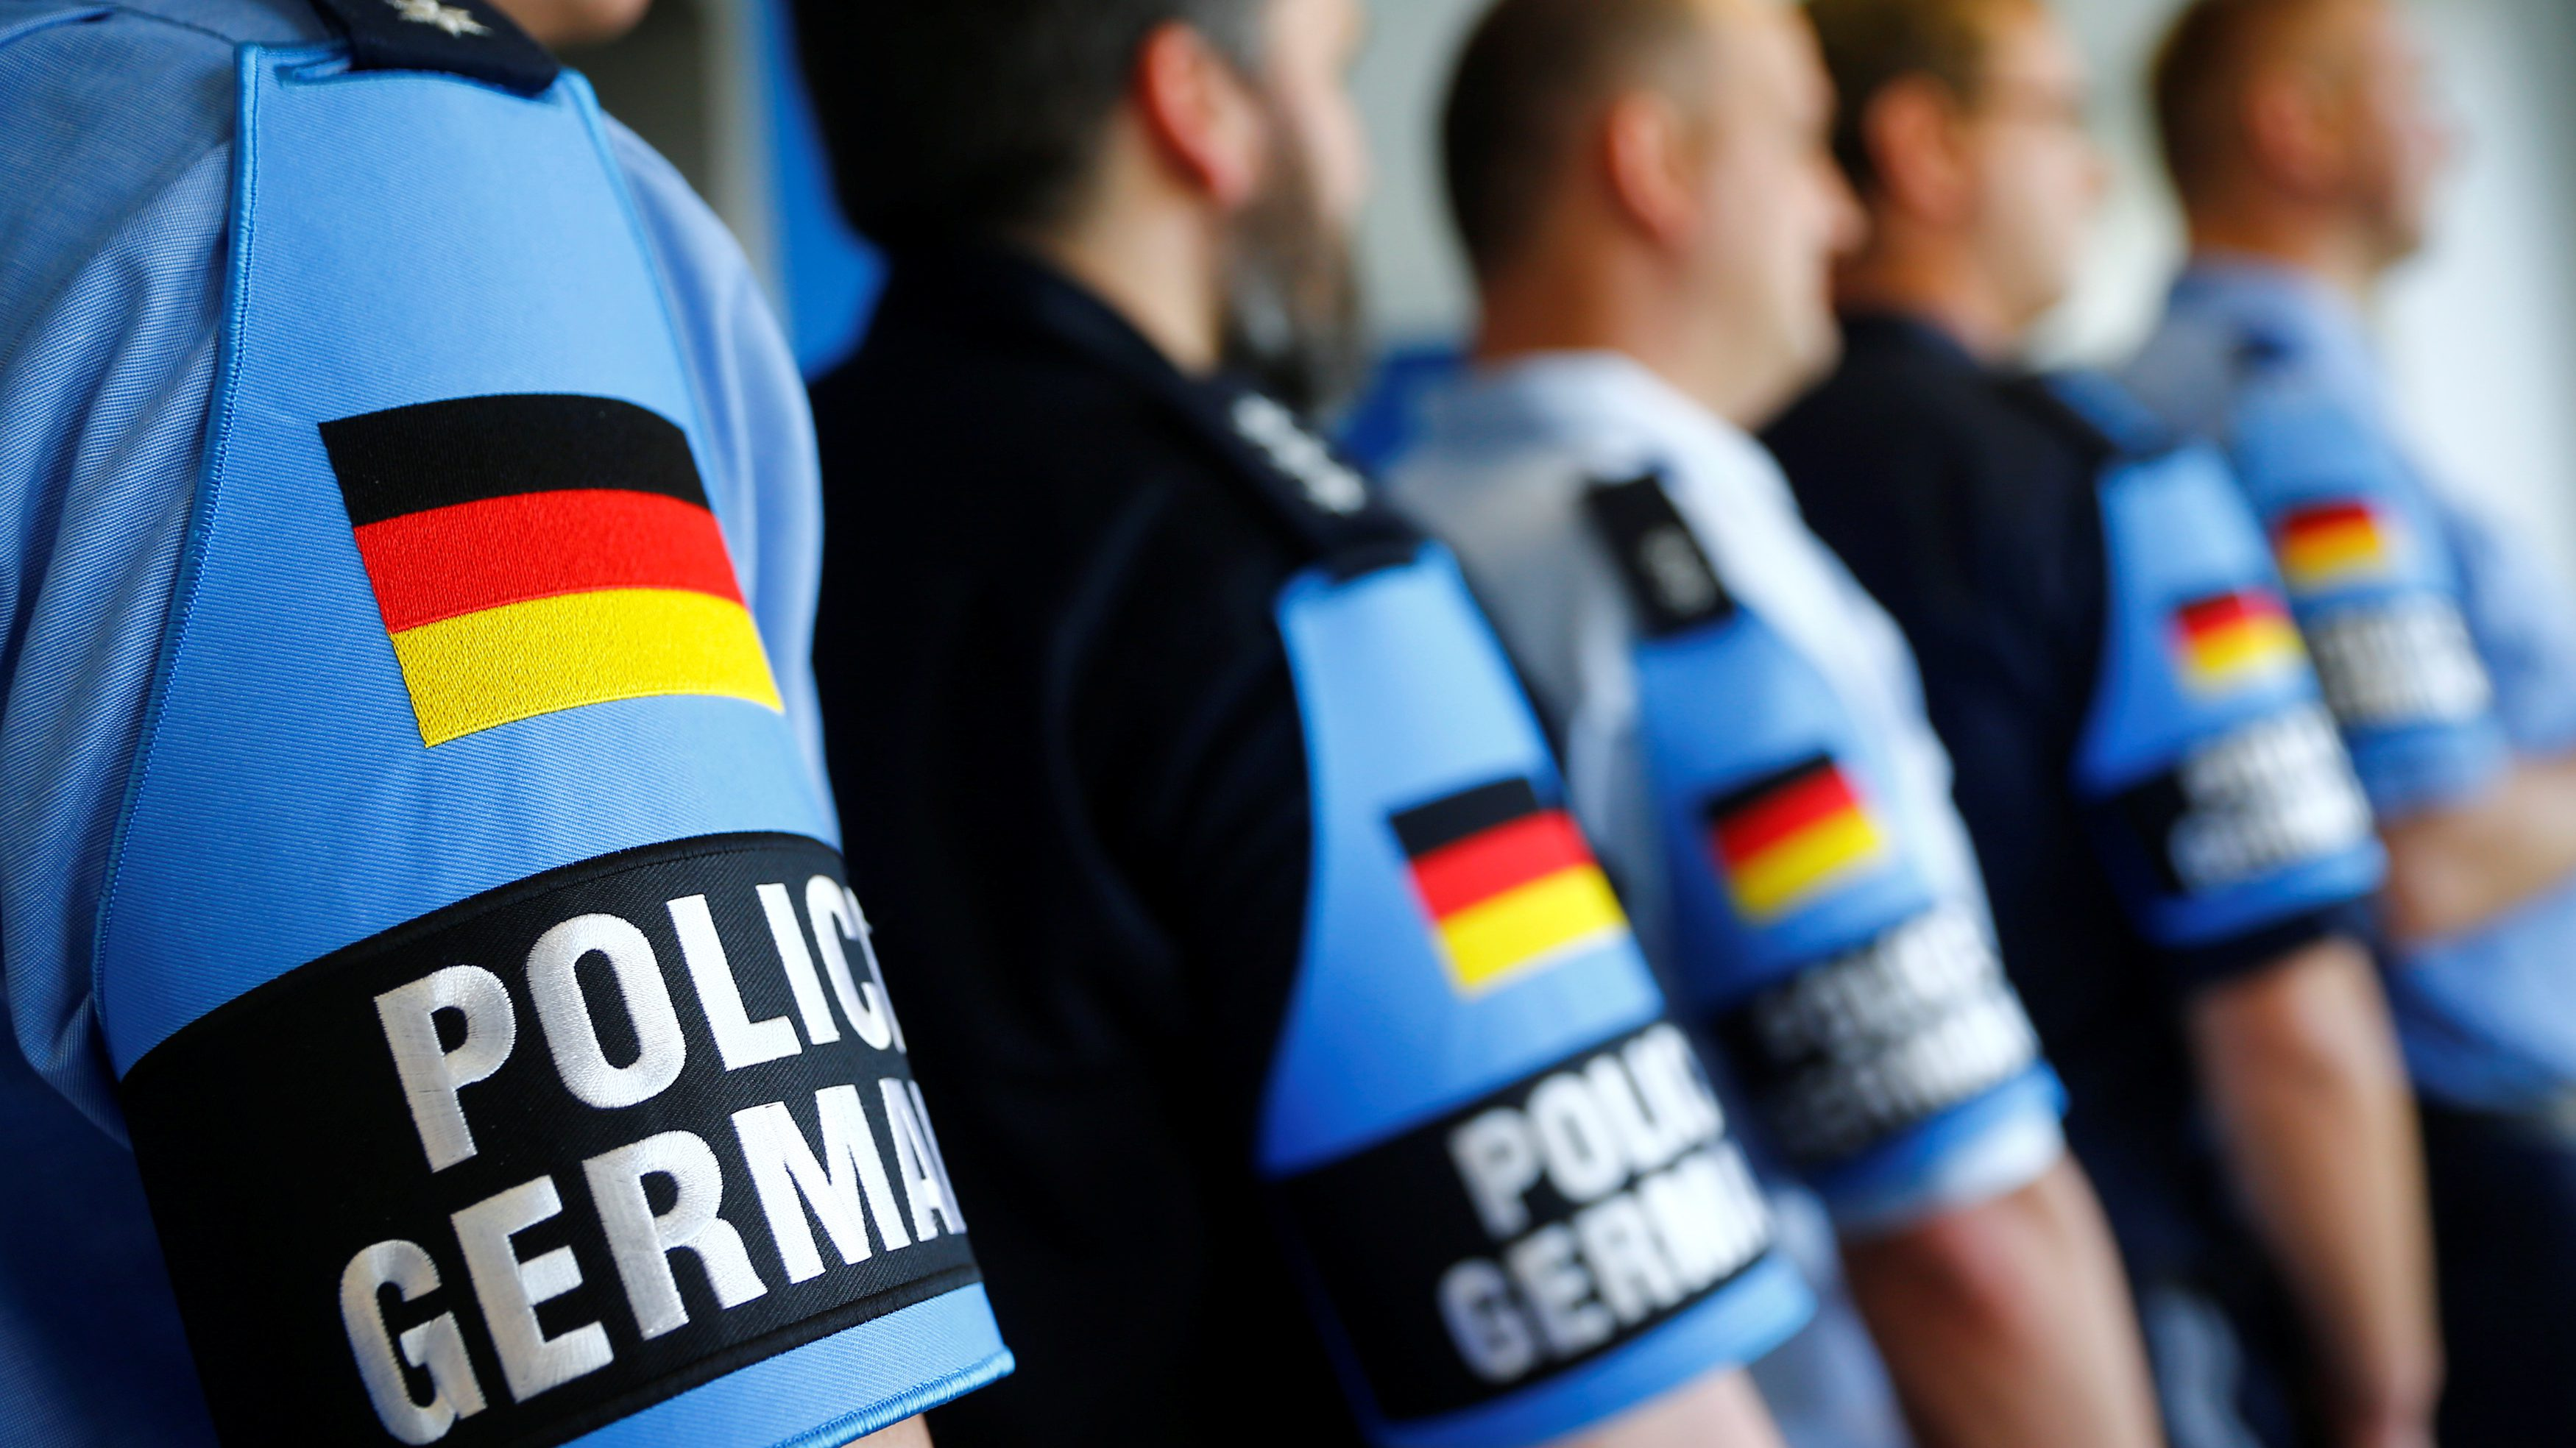 """German police officers pose for an image with their armband reading """"Police Germany"""" at the North Rhine-Westphalian police headquarters in Duisburg, Germany, June 6, 2016. Germany is sending 12 police officers from eight different German federal states who know the local soccer hooligans scene to support French police during the upcoming EURO 2016 soccer championships in France.      - RTSG7F3"""